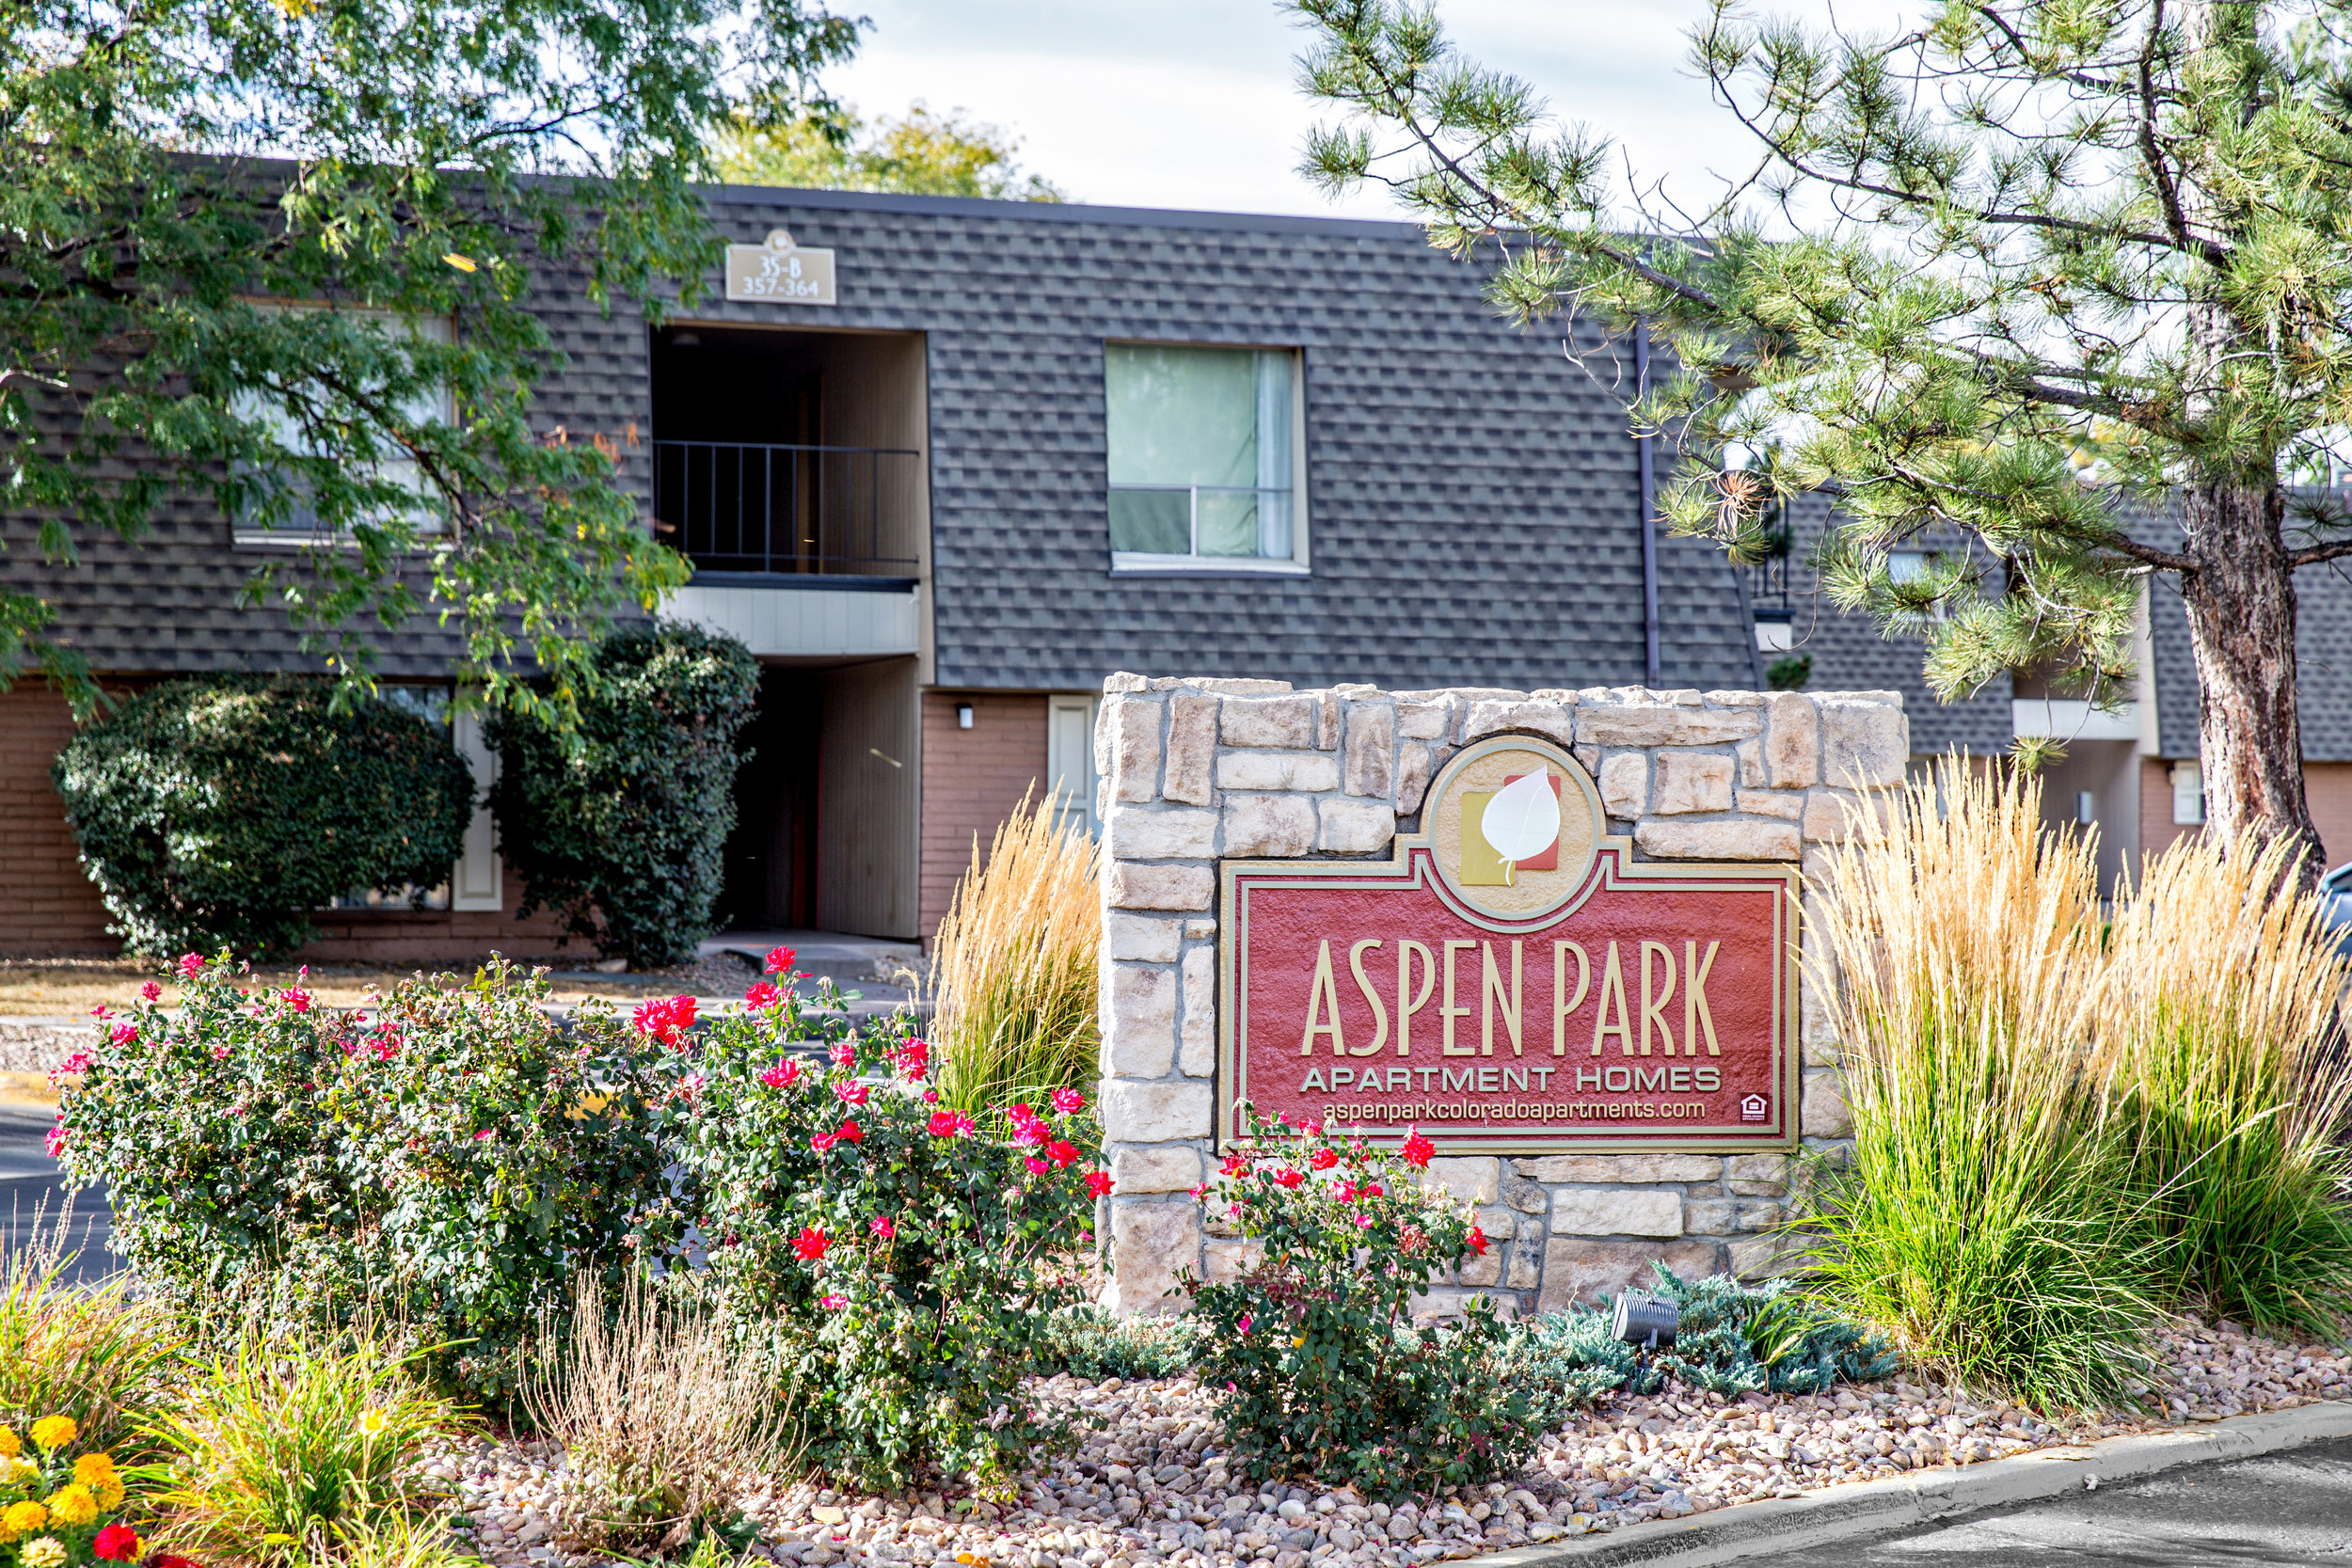 DENVER, CO ·388 UNITS· multi-family · 1973   Aspen Park Apartments is a 388-unit apartment community located on the North I-25 corridor that is a 15-minute drive to downtown and major north-market employers.   Amenities include ample parking, laundry facilities, two outdoor swimming pools, large clubhouse with multiple common spaces including a kids playroom, multiple courtyards with grills, and adjacent regional park and trail system. The interior amenities include air conditioning, private balconies in all units and large floor plans relative to the property's vintage.